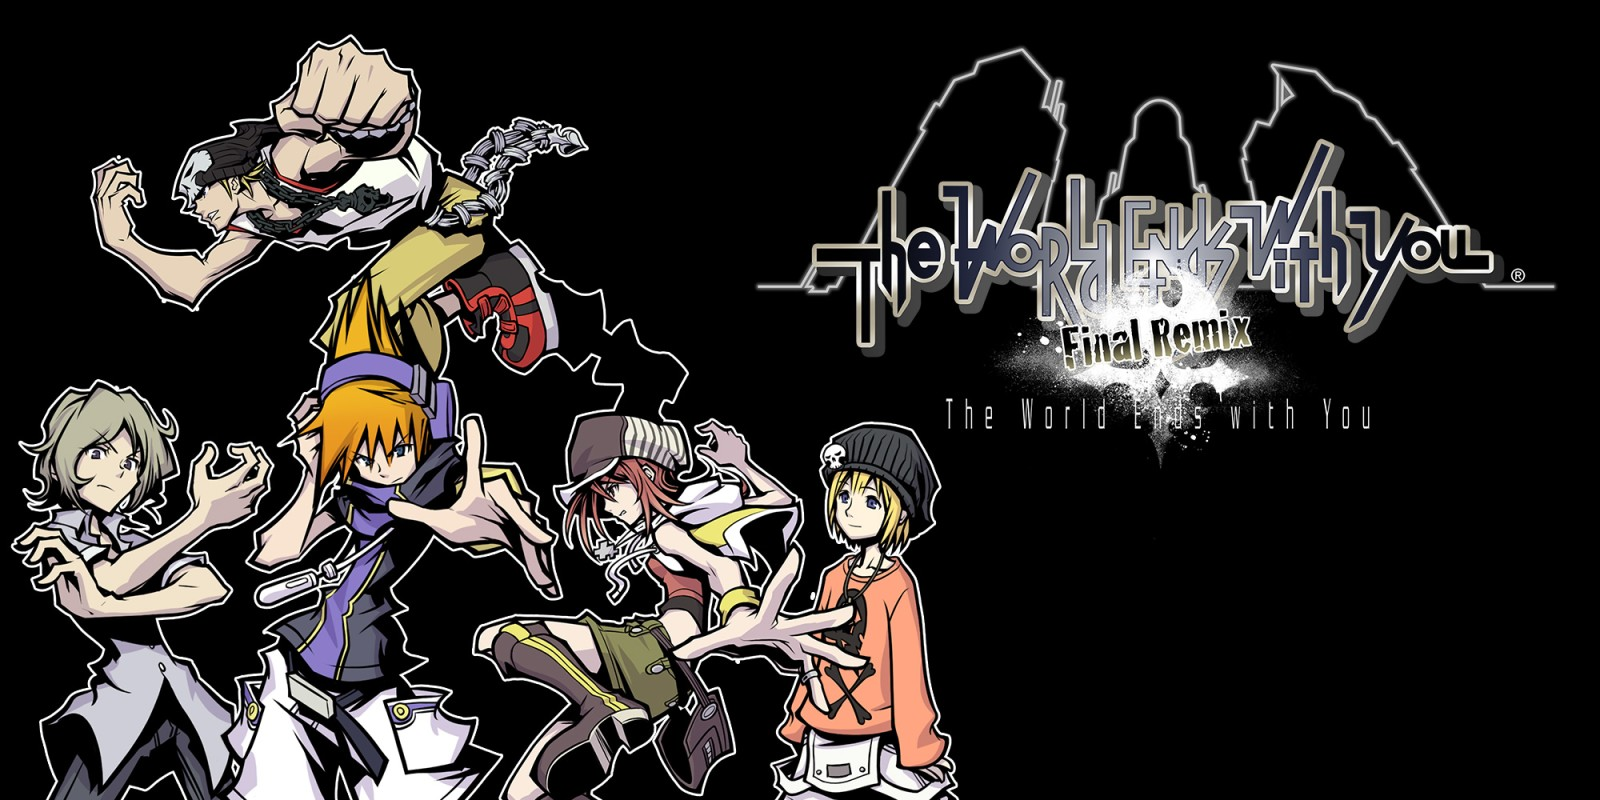 The main logo and characters of The World Ends With You